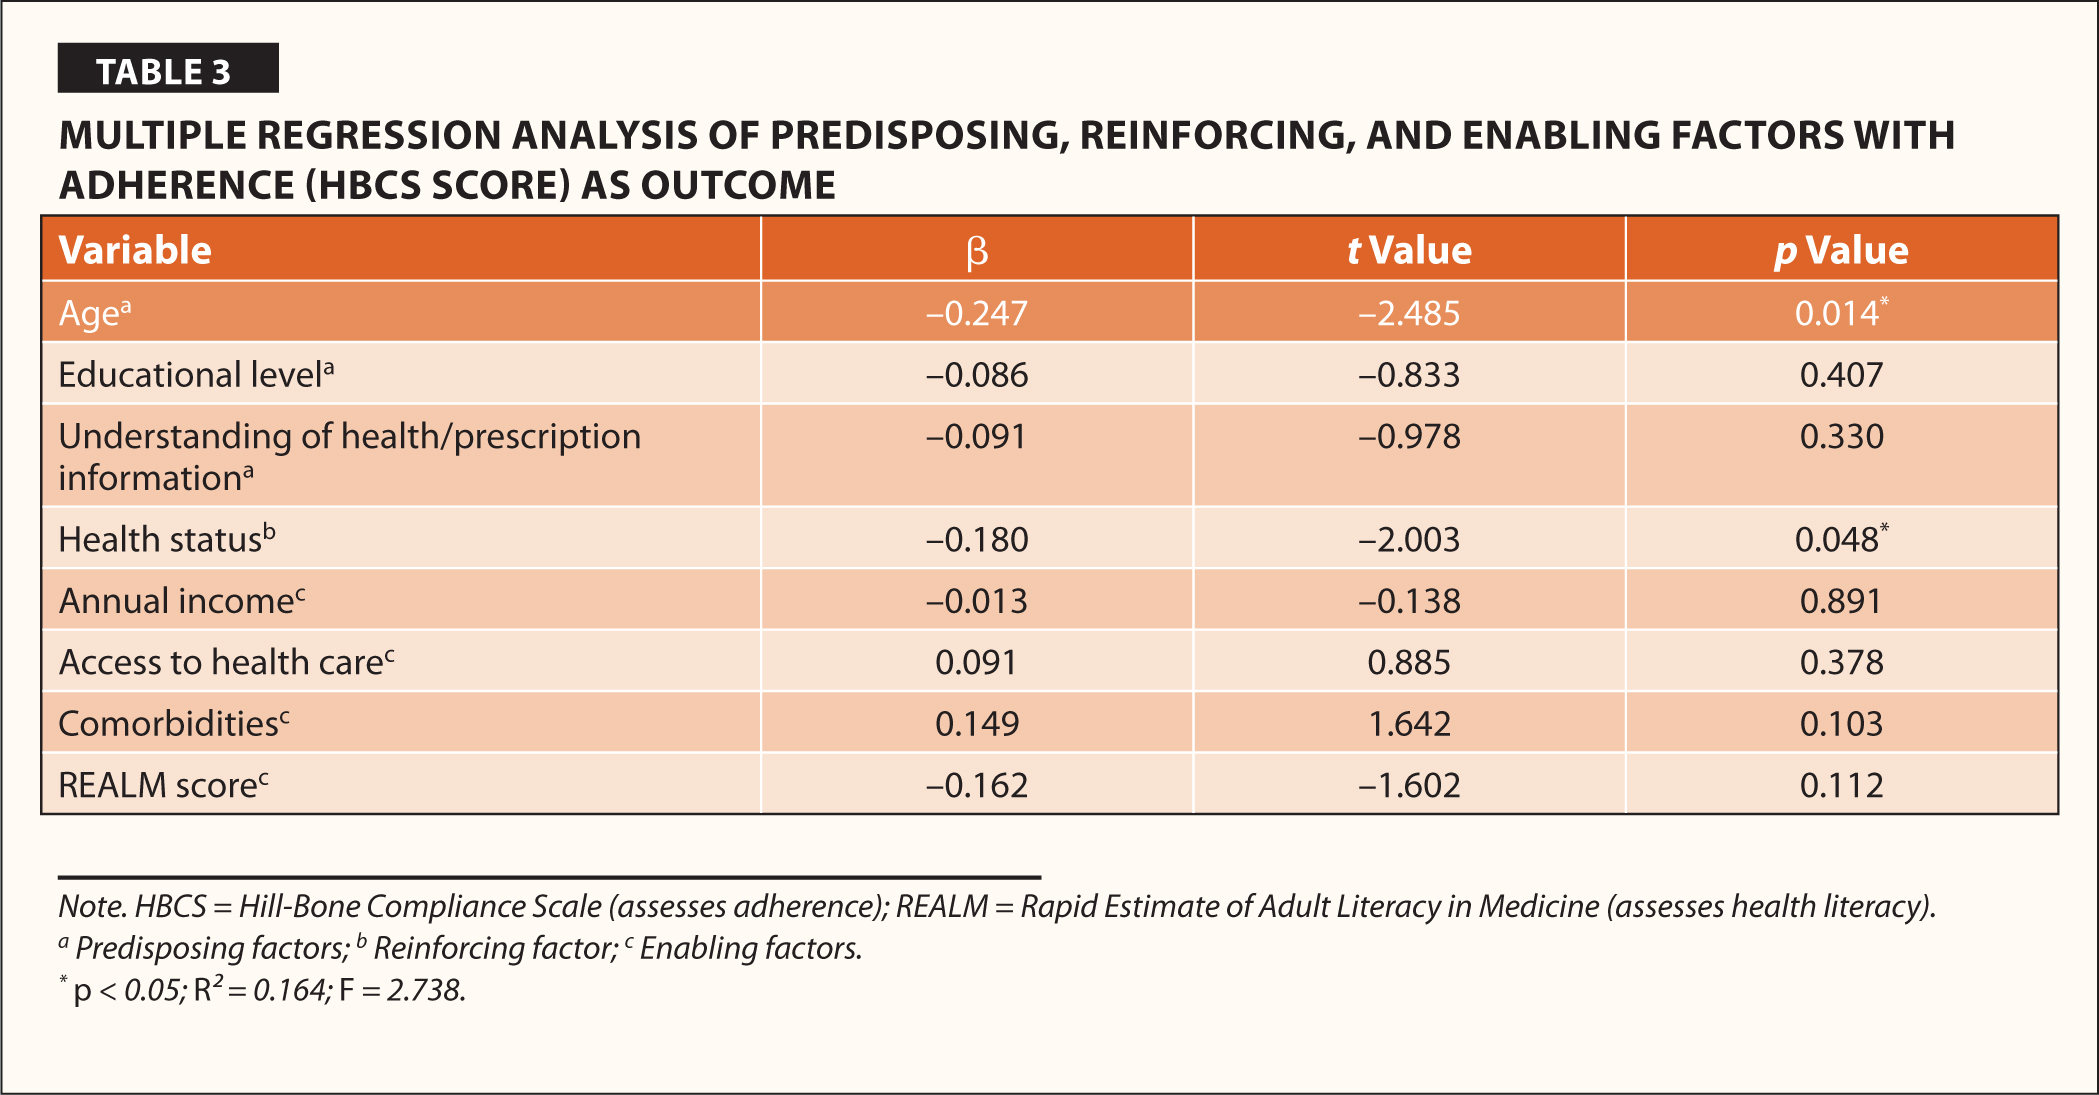 Multiple Regression Analysis of Predisposing, Reinforcing, and Enabling Factors With Adherence (HBCS Score) as Outcome